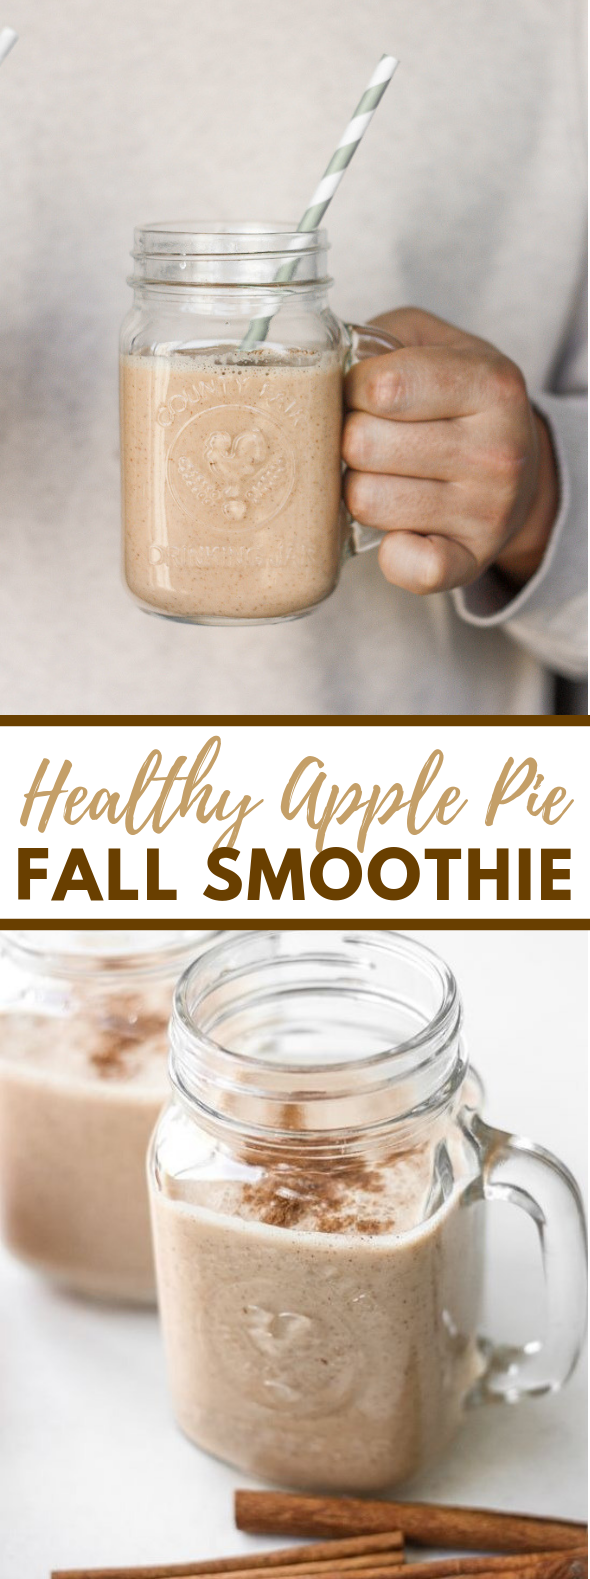 HEALTHY APPLE PIE FALL SMOOTHIE #drink #falldrink